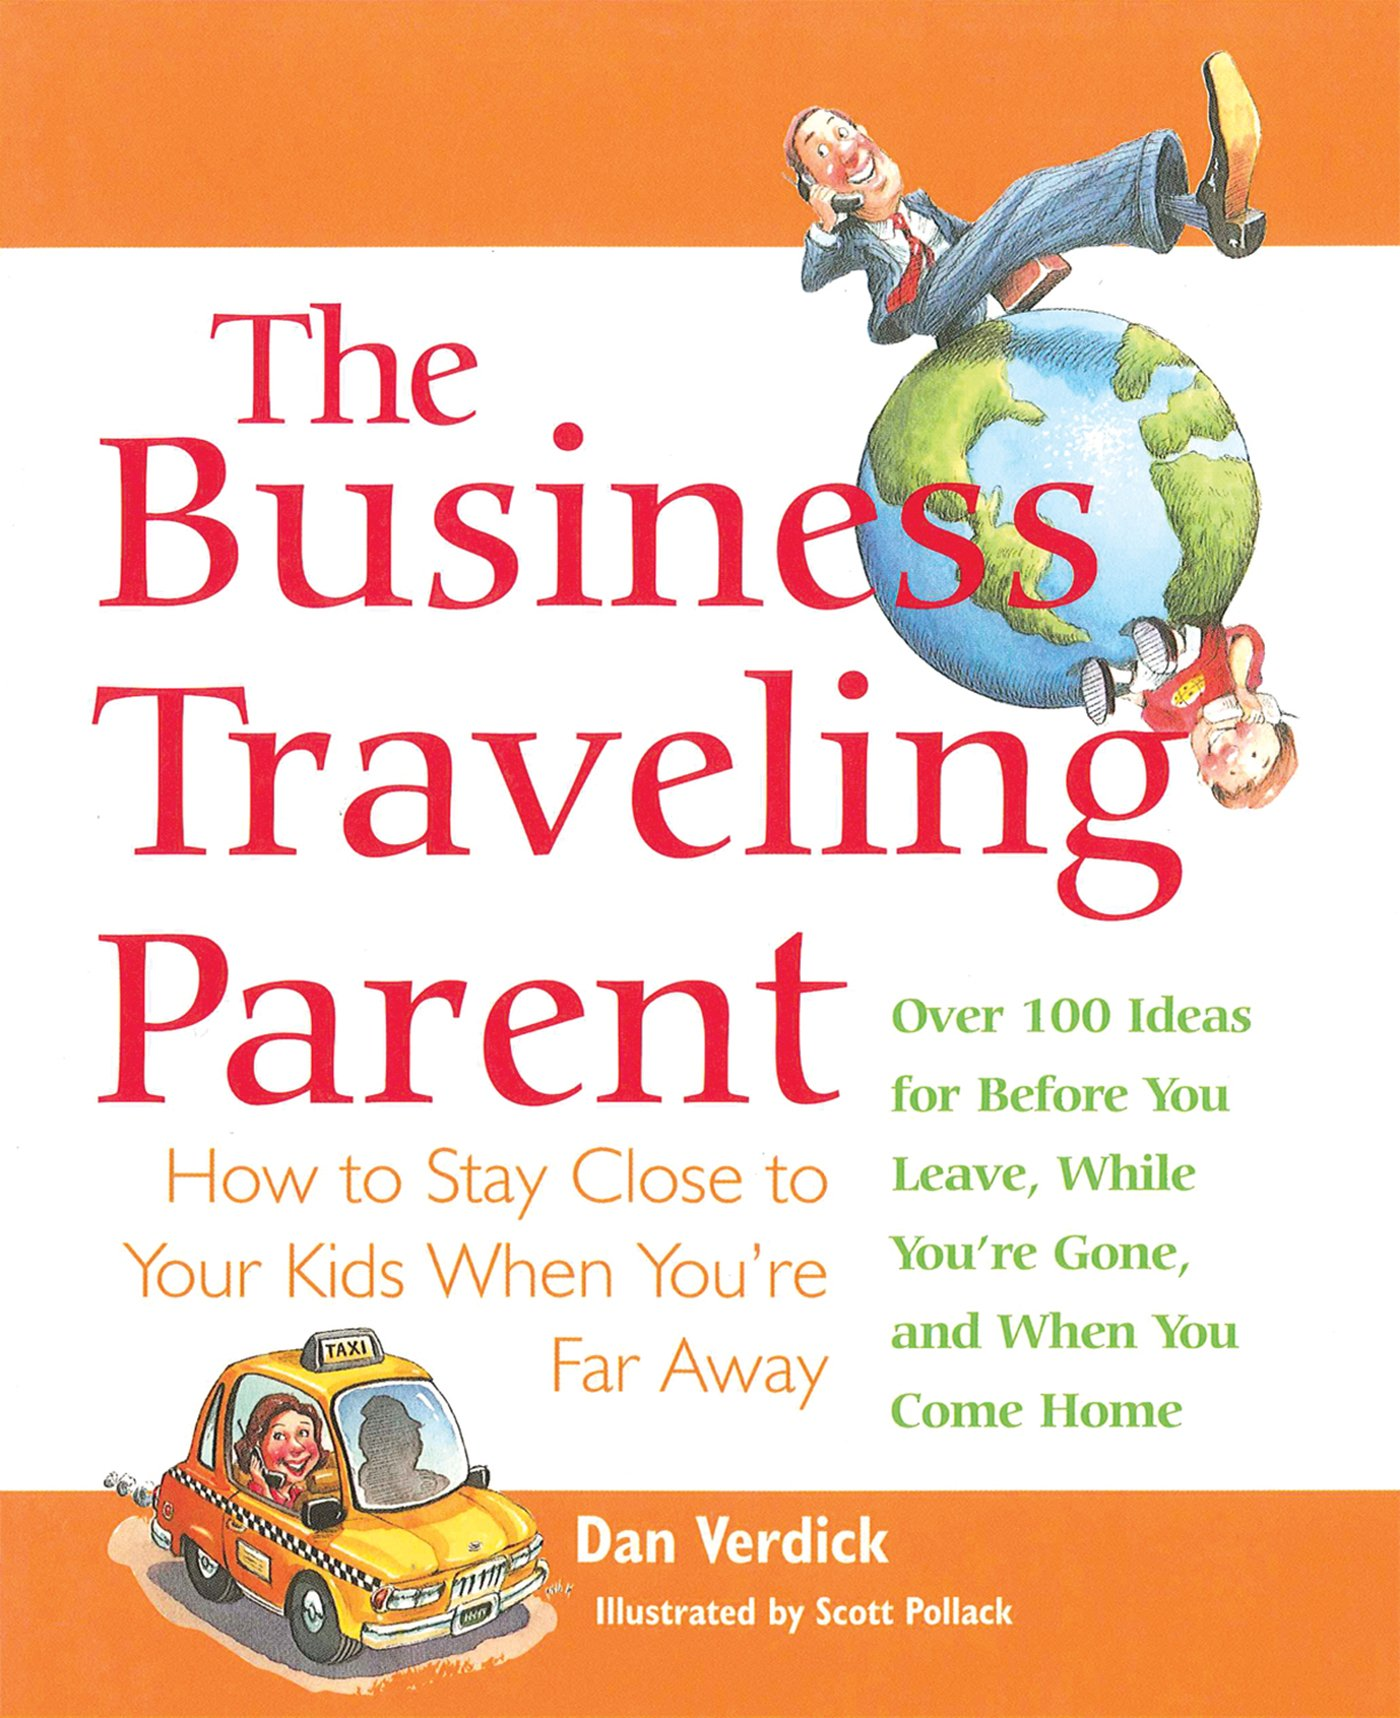 The Business Traveling Parent: How to Stay Close to Your Kids When You're Far Away pdf epub